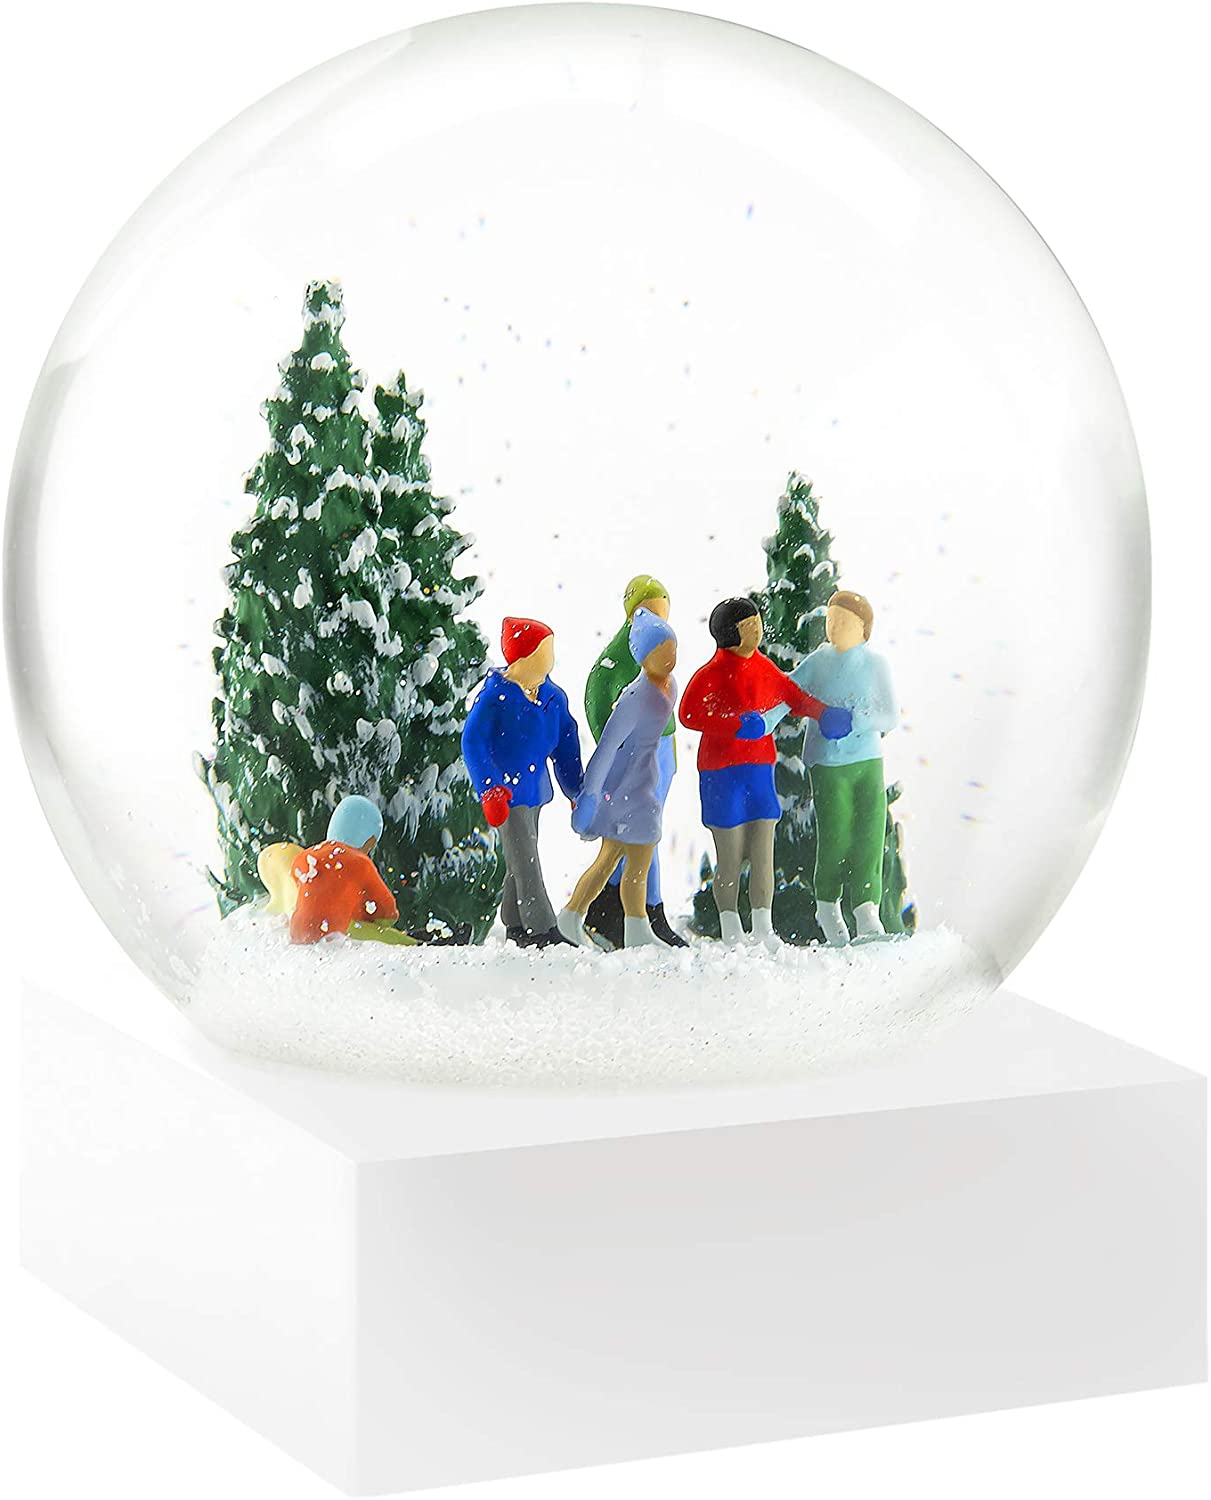 CoolSnowGlobes Ice Skaters Snow Globe